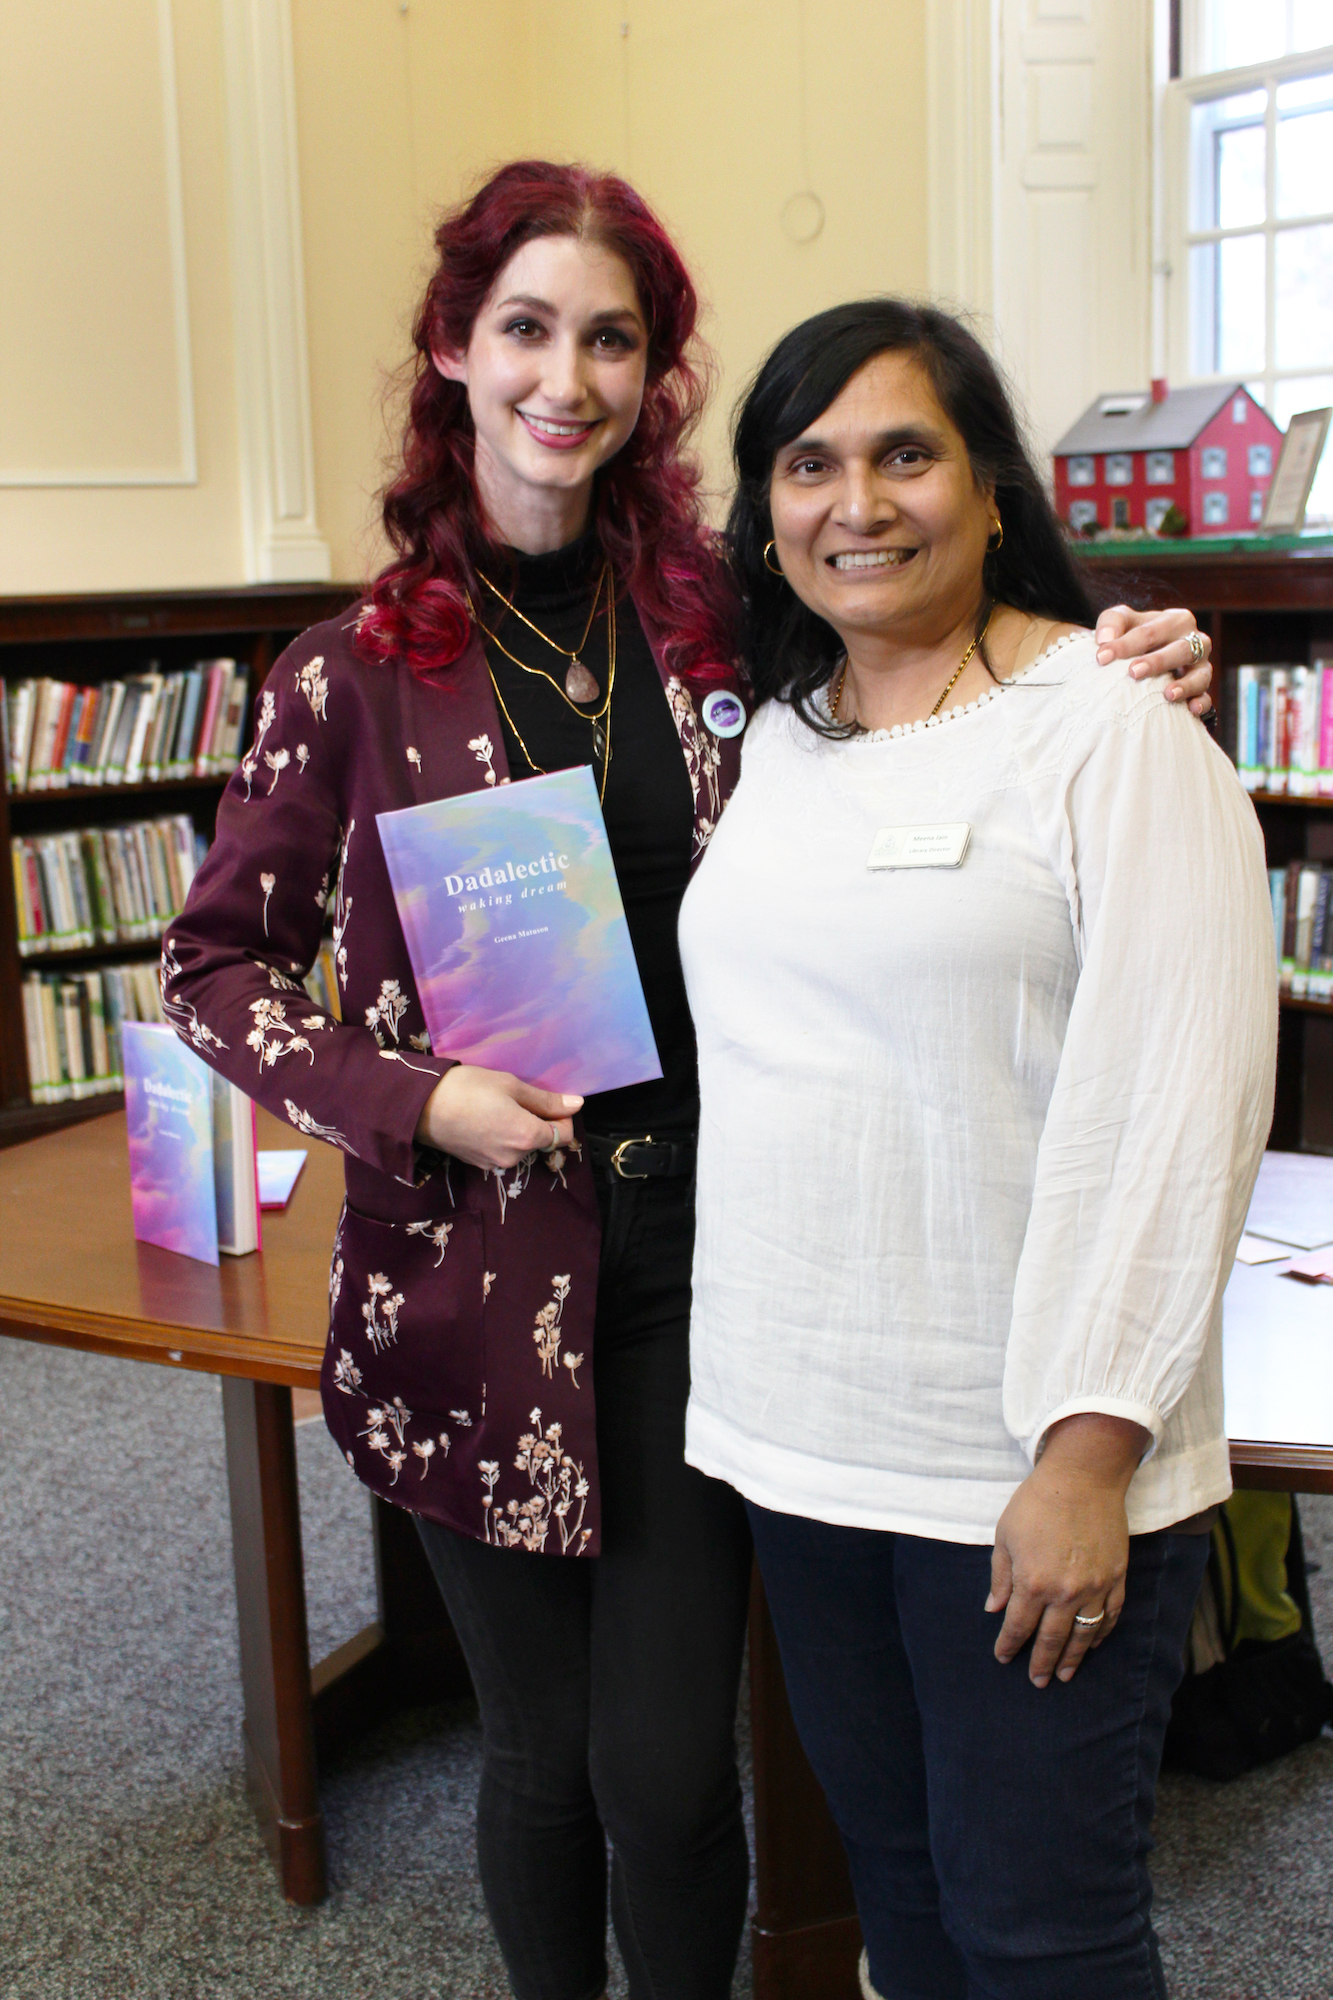 "Geena Matuson ""The Girl Mirage"" with Medfield Public Library Director Meena Jain at her book reading and signing for first book ""Dadalectic."" See more @ http://dadalectic.com."